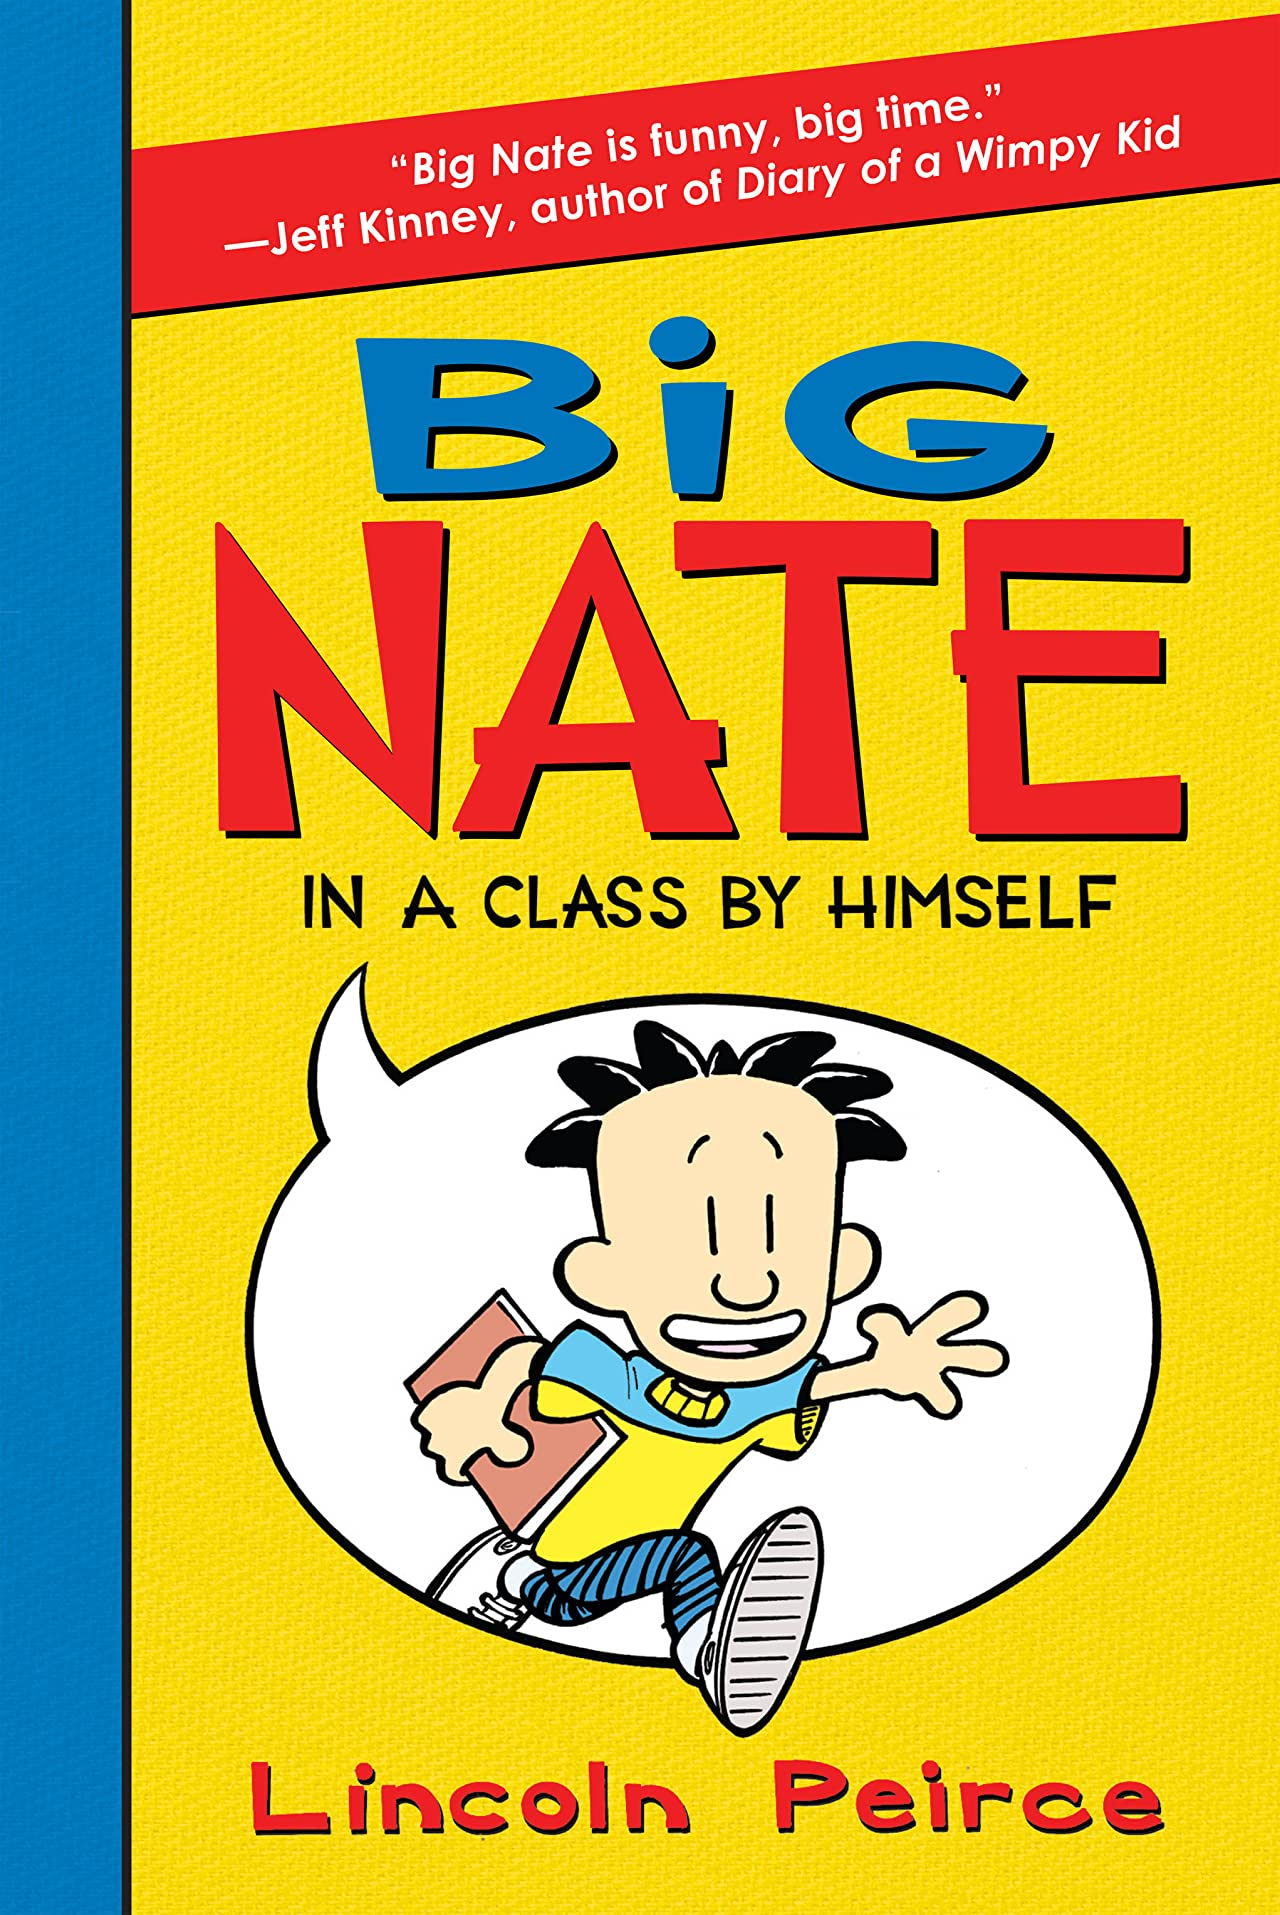 Big Nate Vol. 1: In a Class by Himself